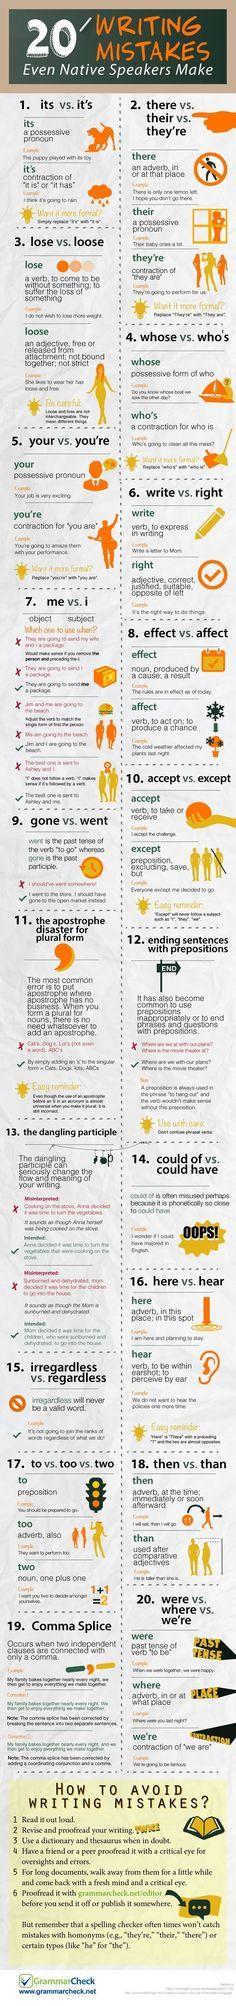 20 writing mistakes even native speakers make.